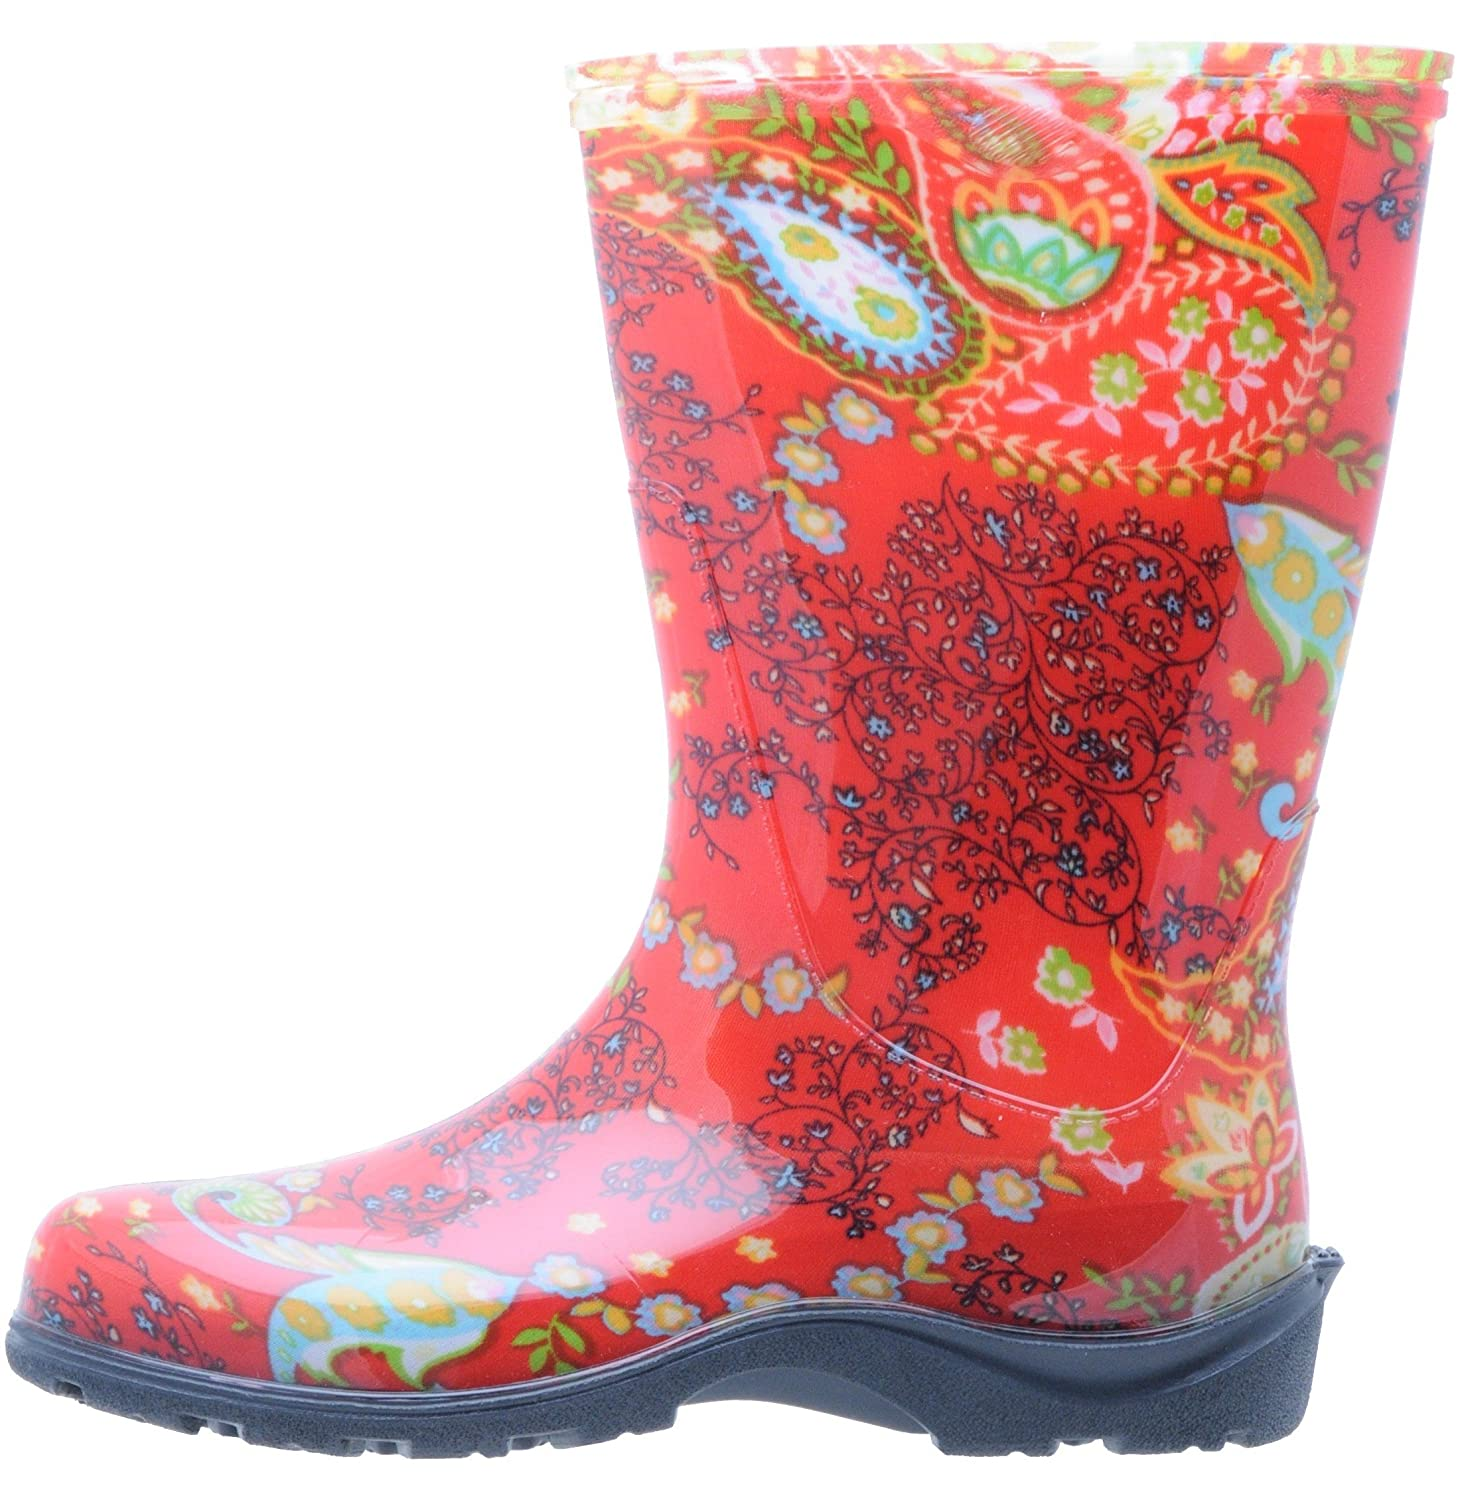 Sloggers  Women's Waterproof Rain and Garden Boot with Comfort Insole, Paisley Red, Size 10,  Style 5004RD10 B001IB7SOG size 10|Paisley Red